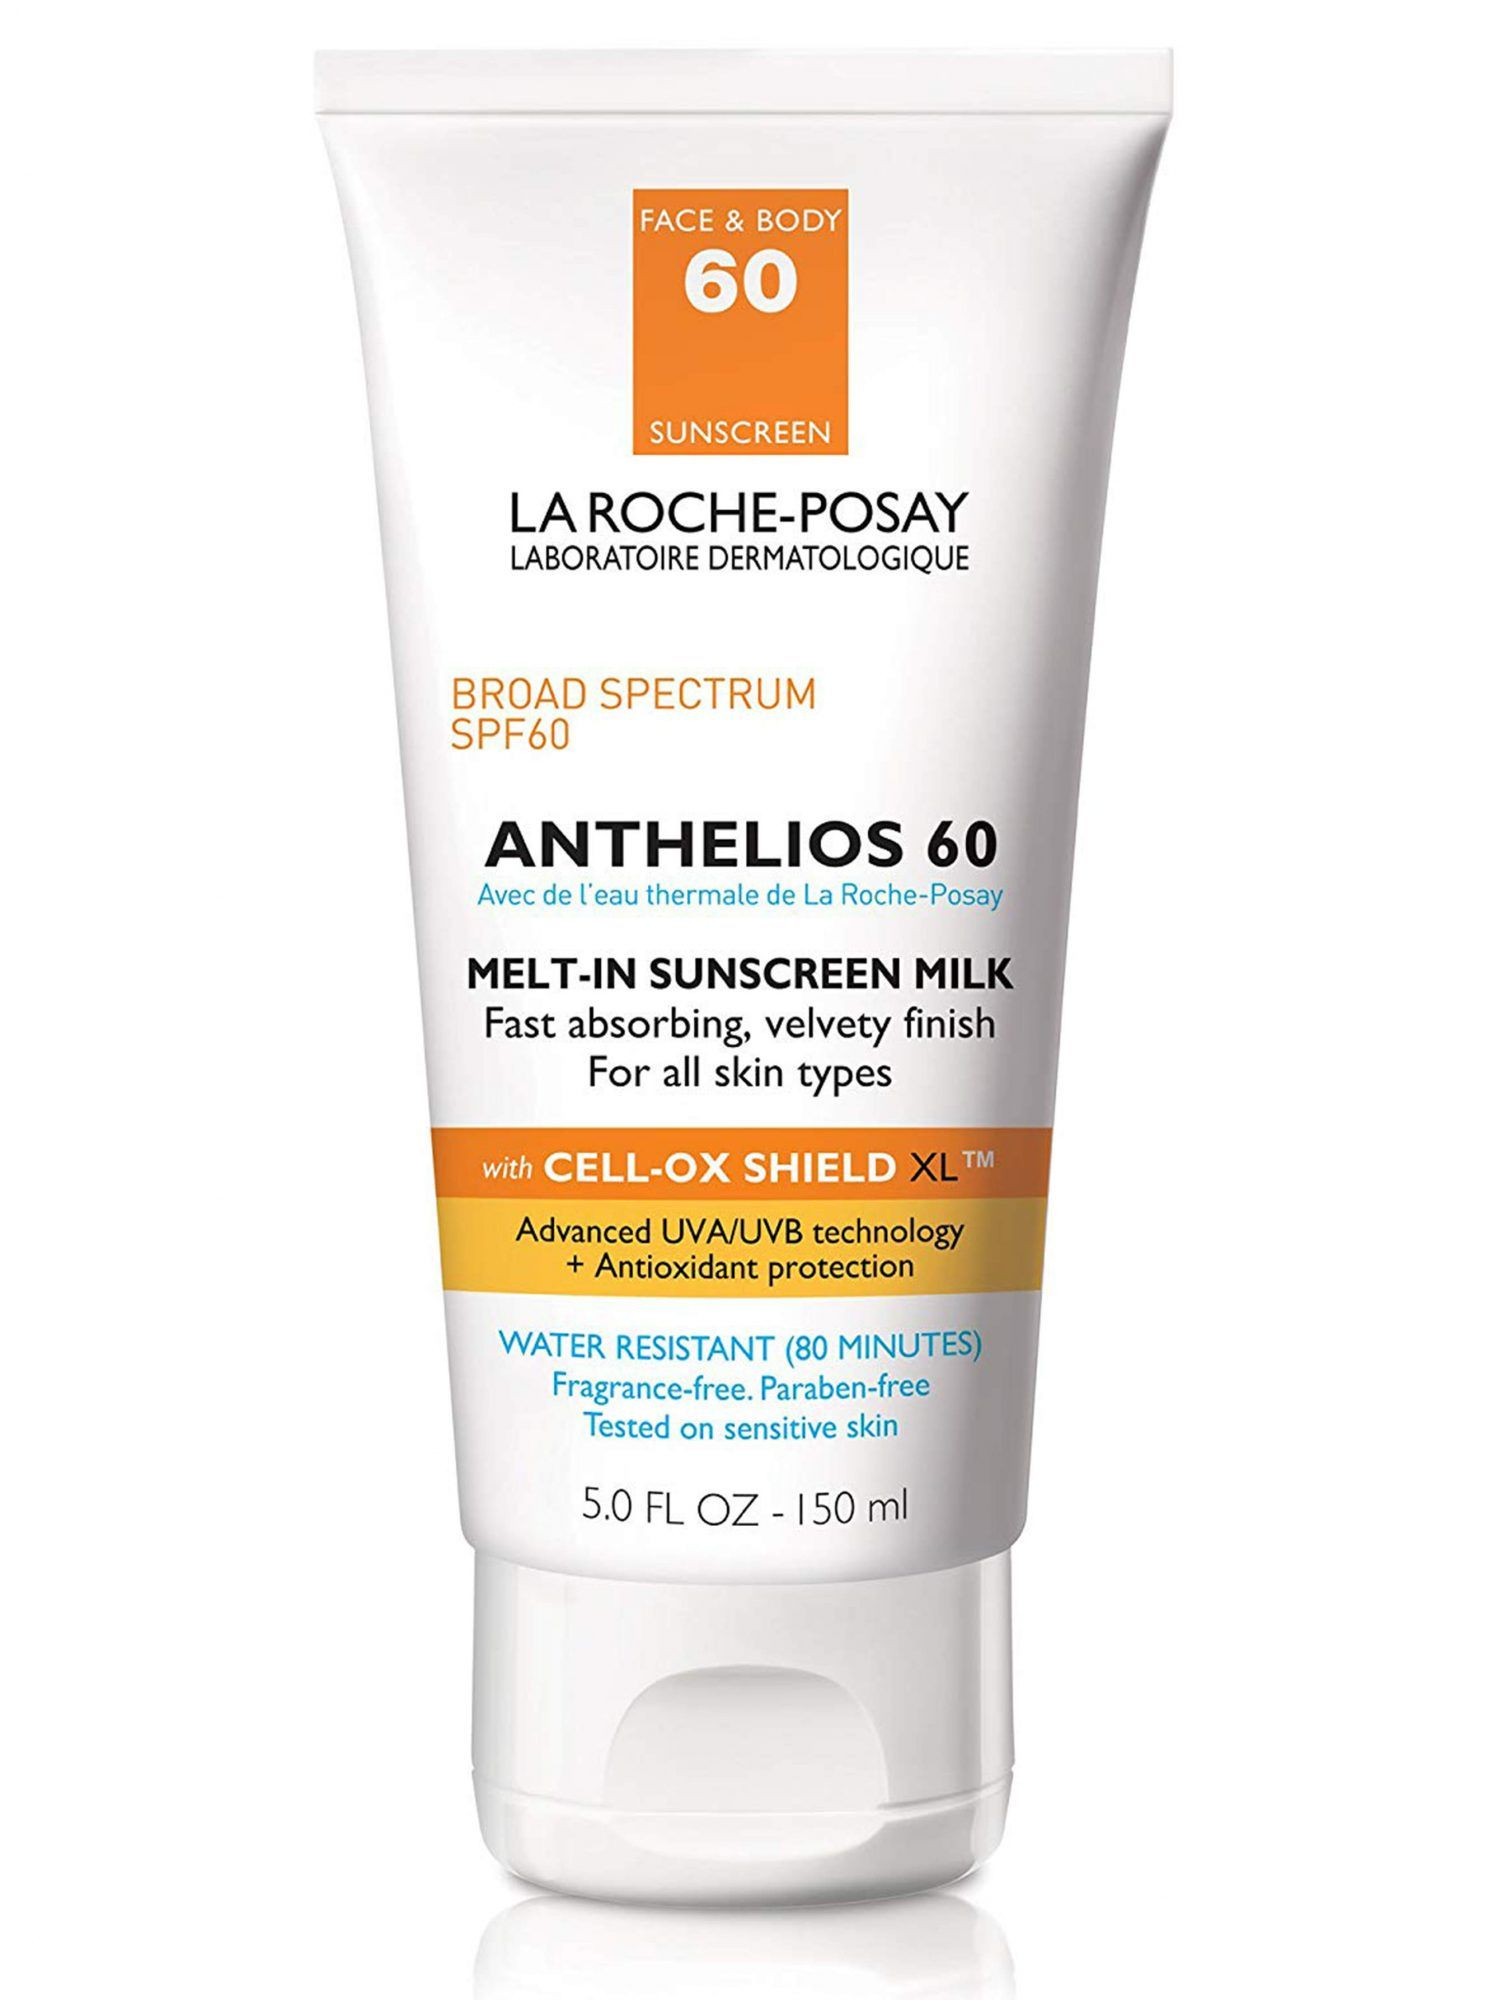 This Sunscreen Just Earned A Perfect Score From Consumer Reports For The Fifth Time And It S On Amazon In 2020 Sunscreen Moisturizer Face Sunscreen Best Sunscreen For Tattoos